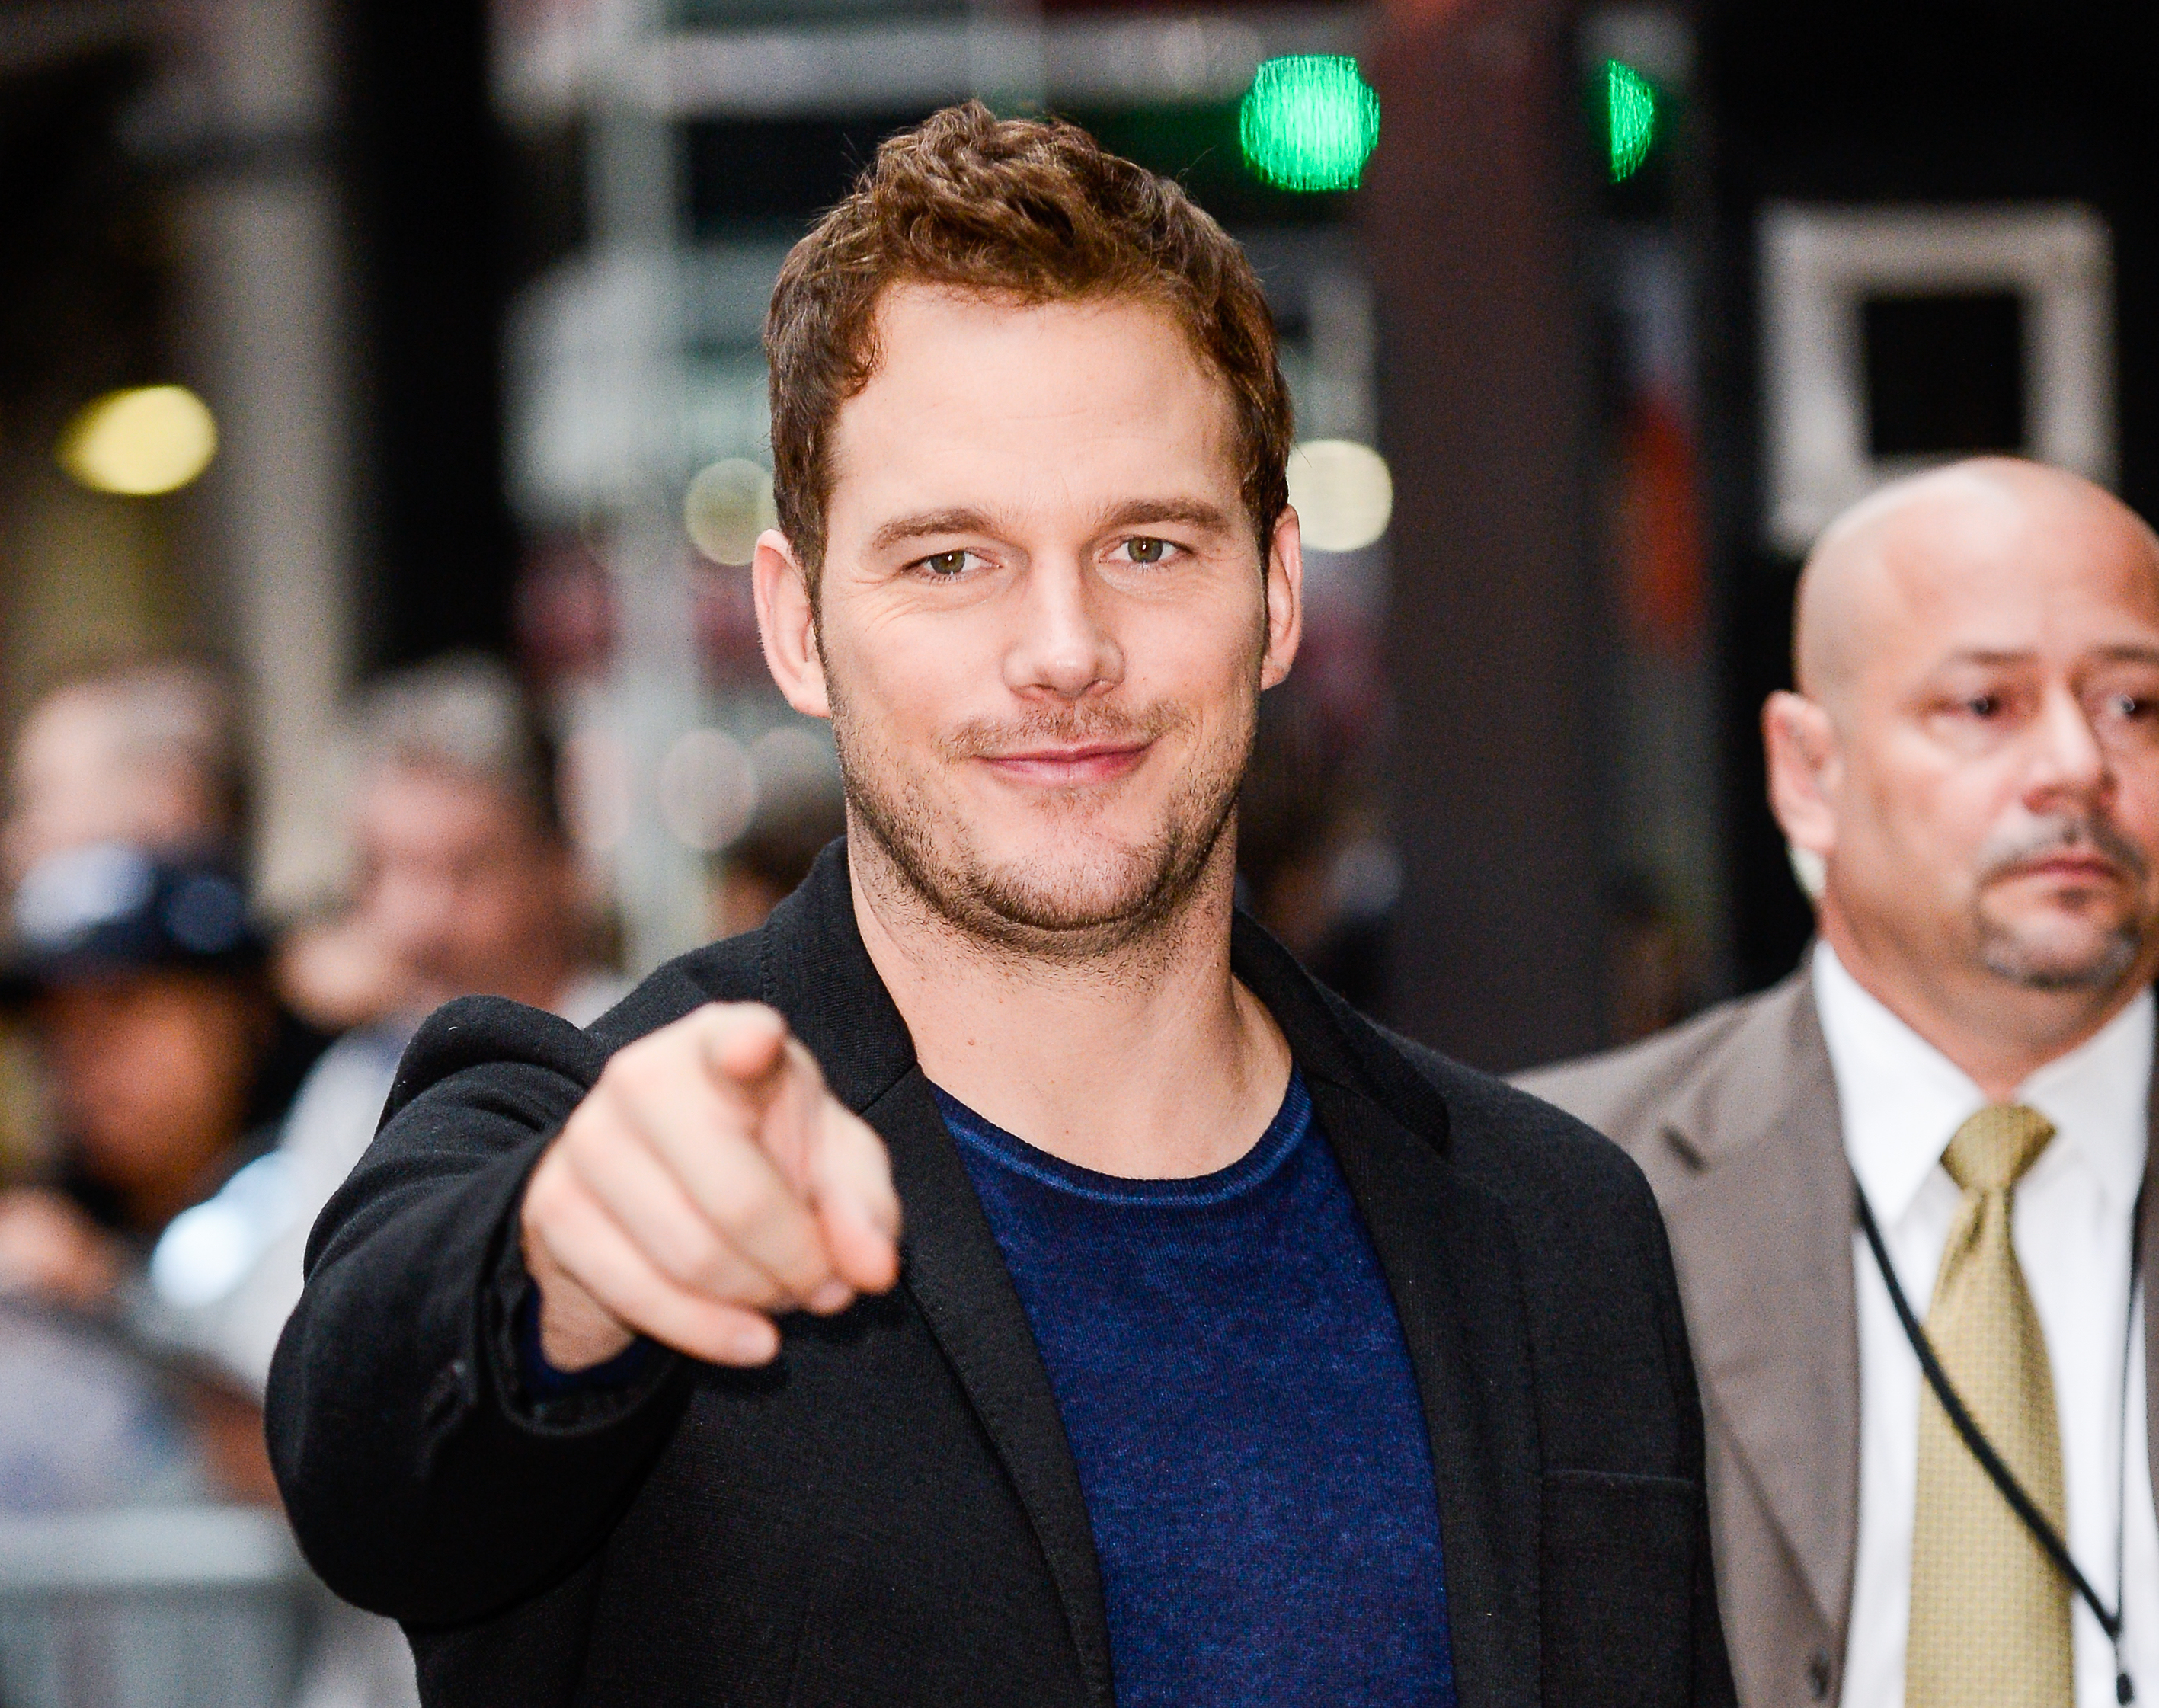 Chris Pratt was adorably boyish at his first red carpet premiere, and it's so charming